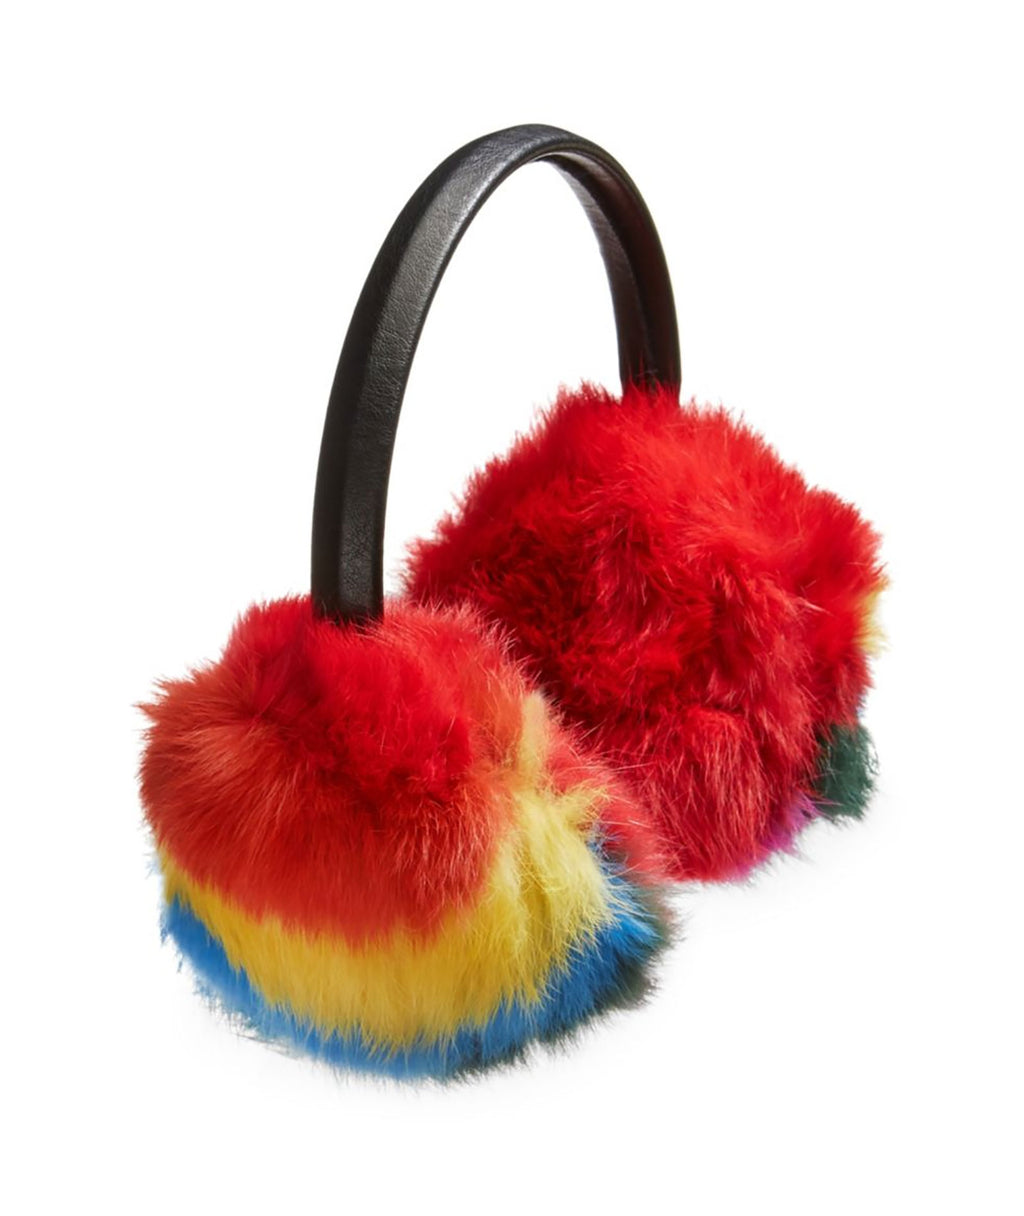 Bari Lynn Black Rainbow Earmuffs